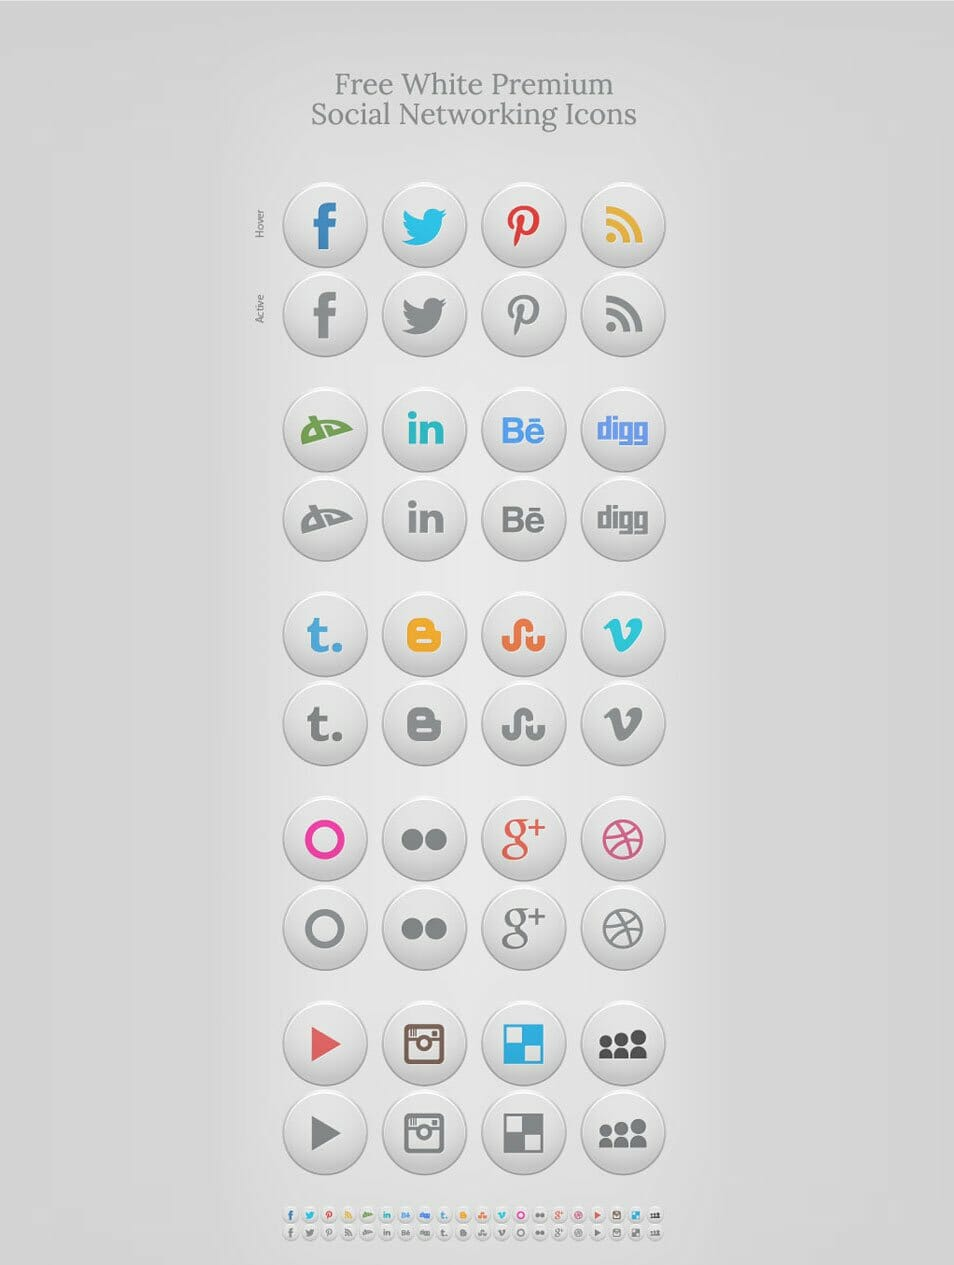 Free White Premium Social Networking Icons